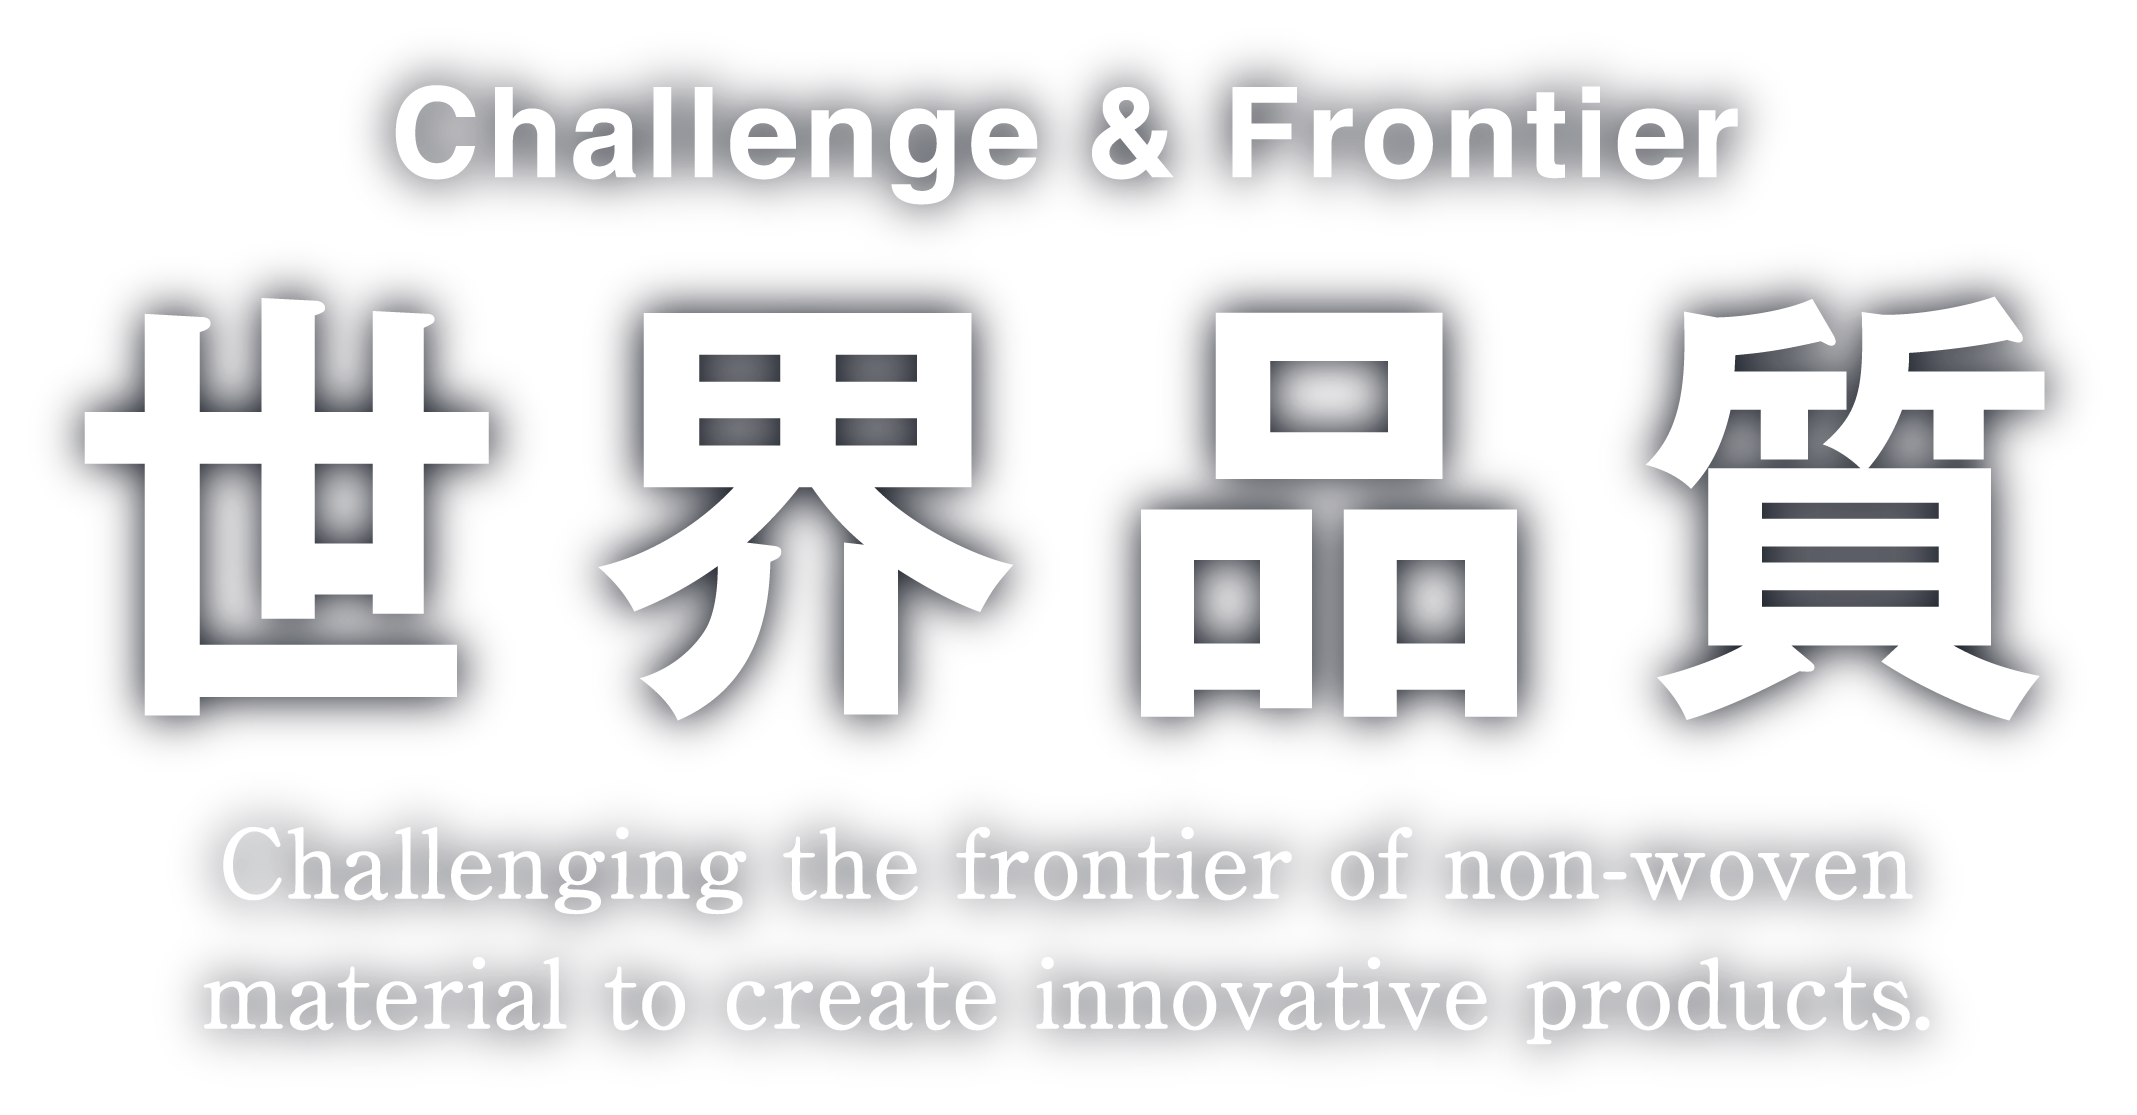 Challenge & Frontier 世界品質 Challenging the frontier of non-woven material to create innovative products.